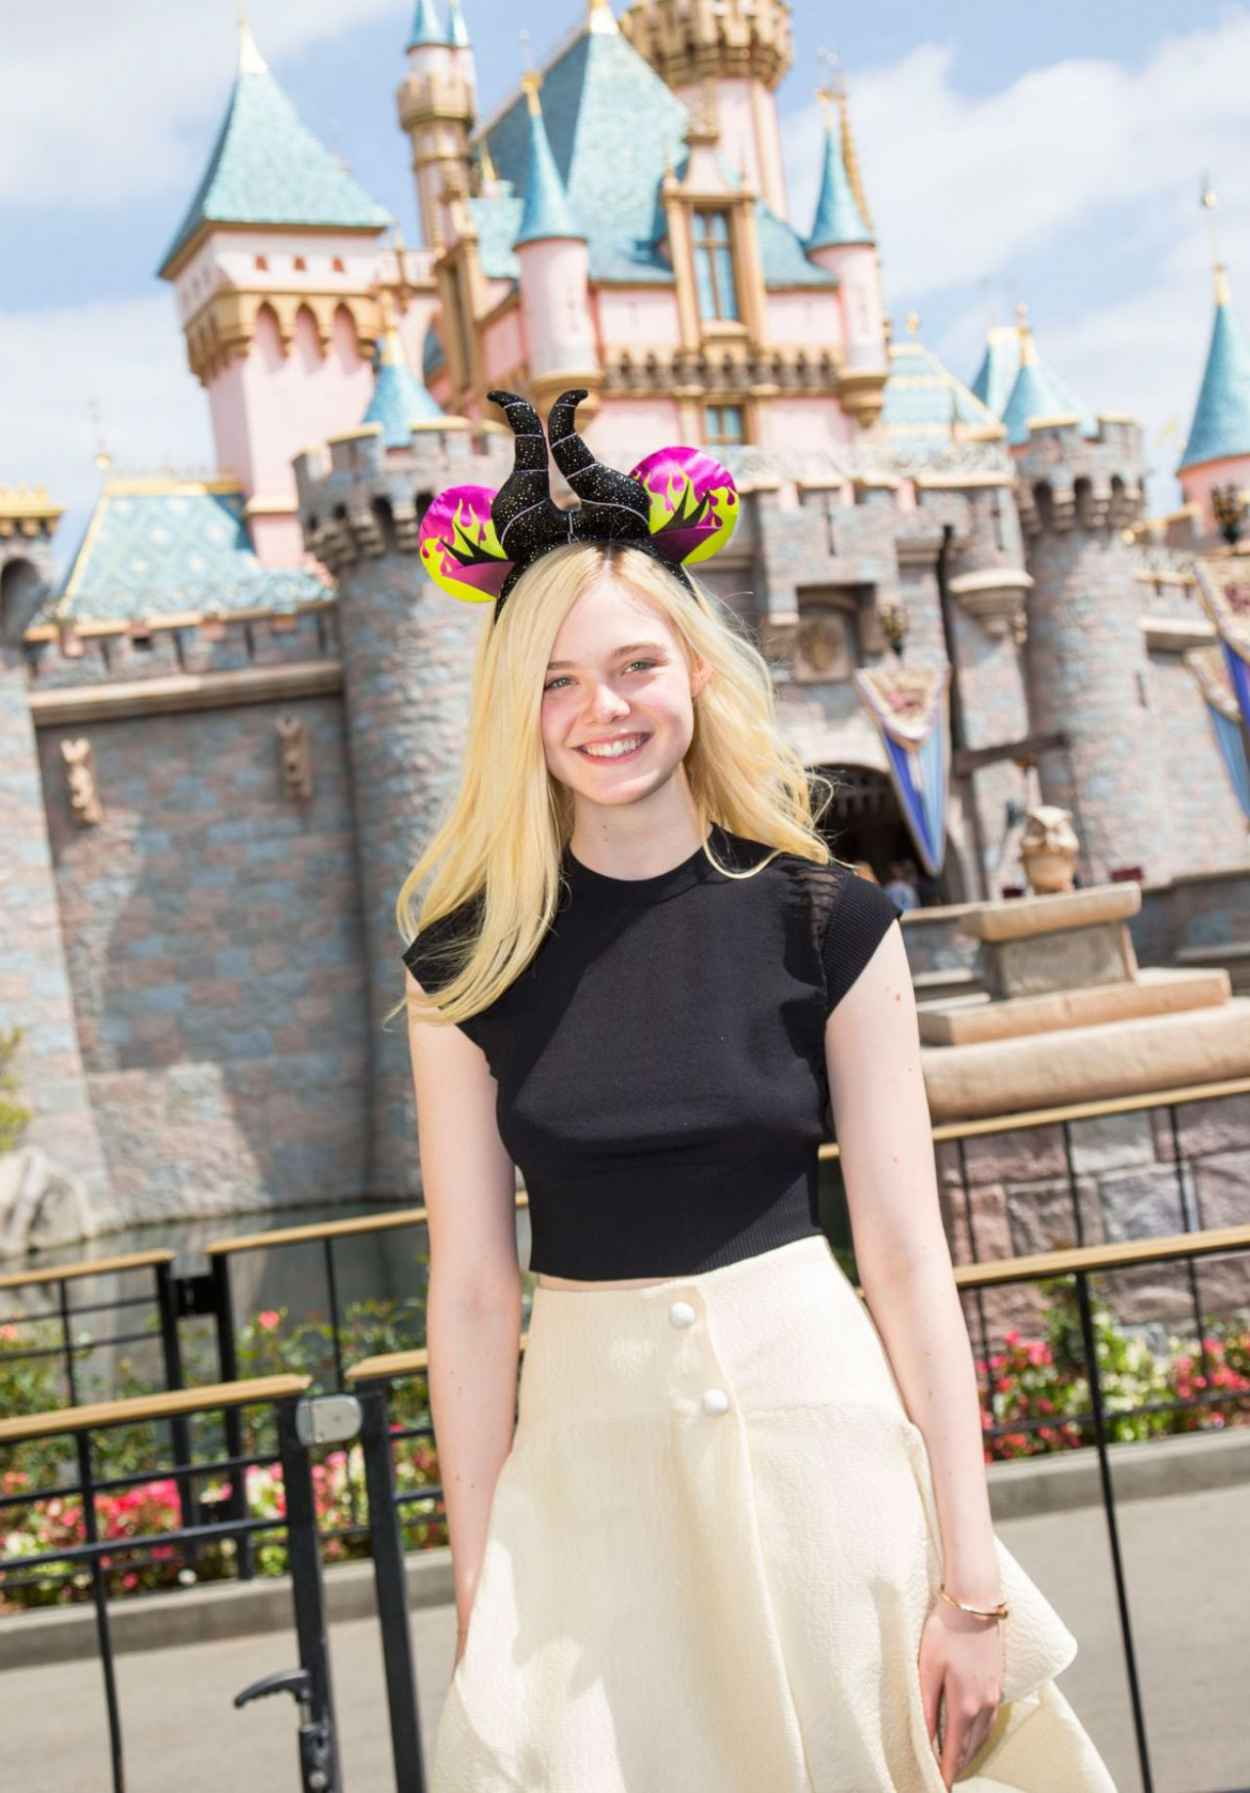 Elle Fanning Posing in a Black Top at Disneyland in Anaheim - April 2015-1